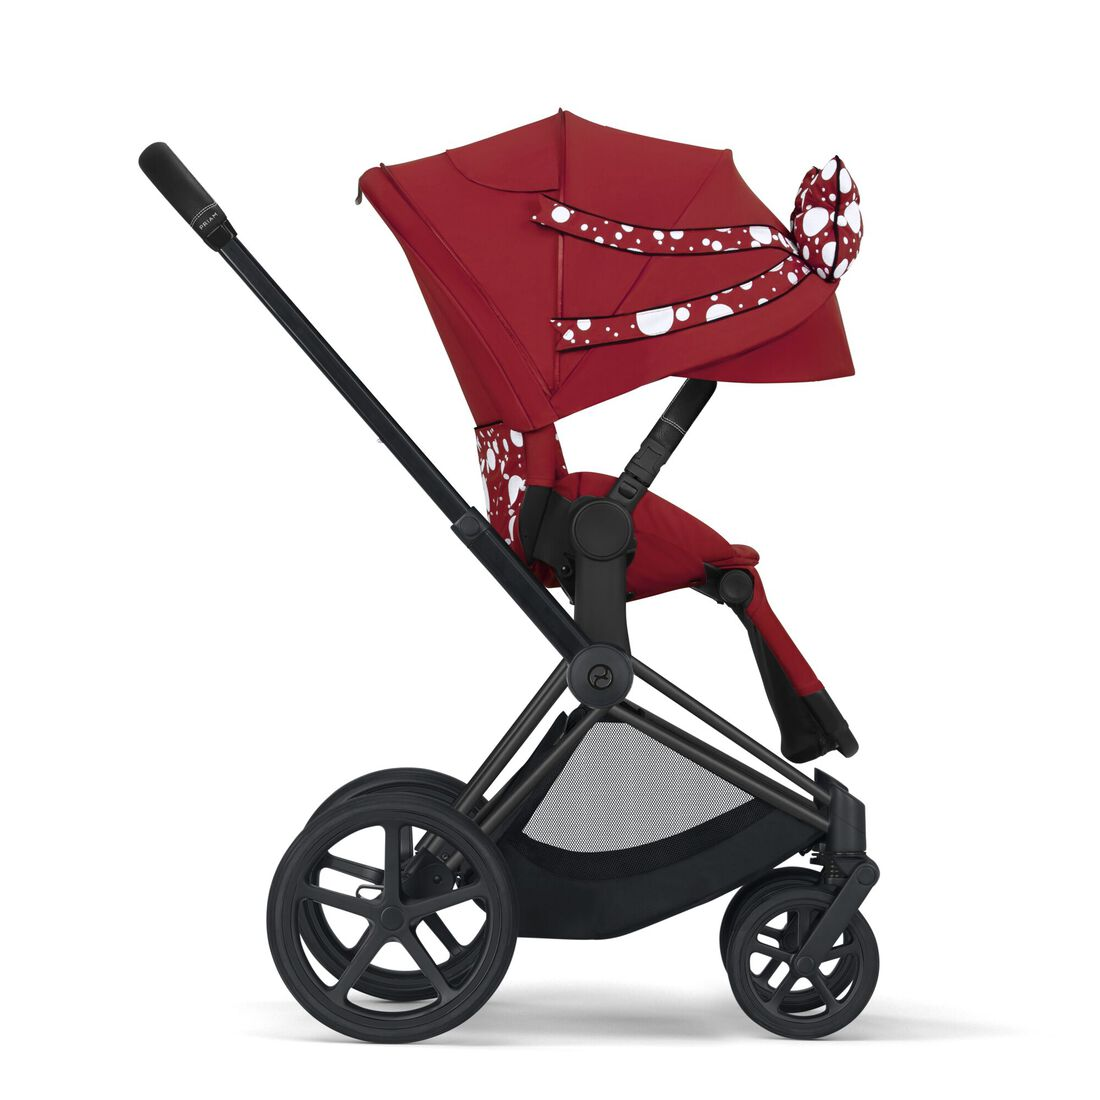 CYBEX Priam Seat Pack - Petticoat Red in Petticoat Red large image number 4